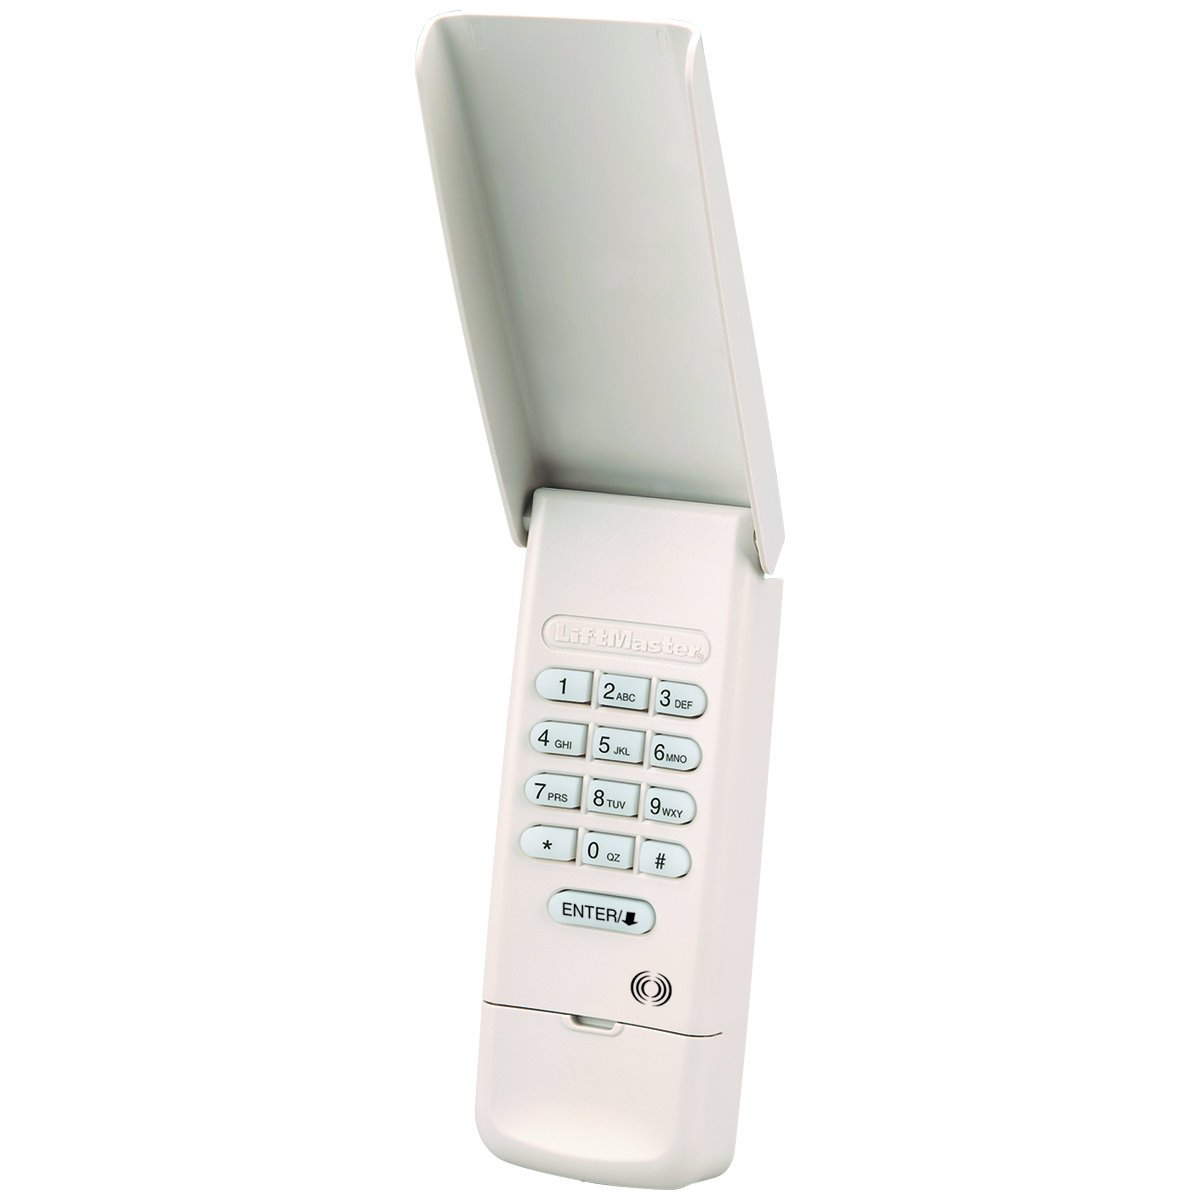 Chamberlain Liftmaster 377LM 315MHz Garage Door Keypad at Sears.com